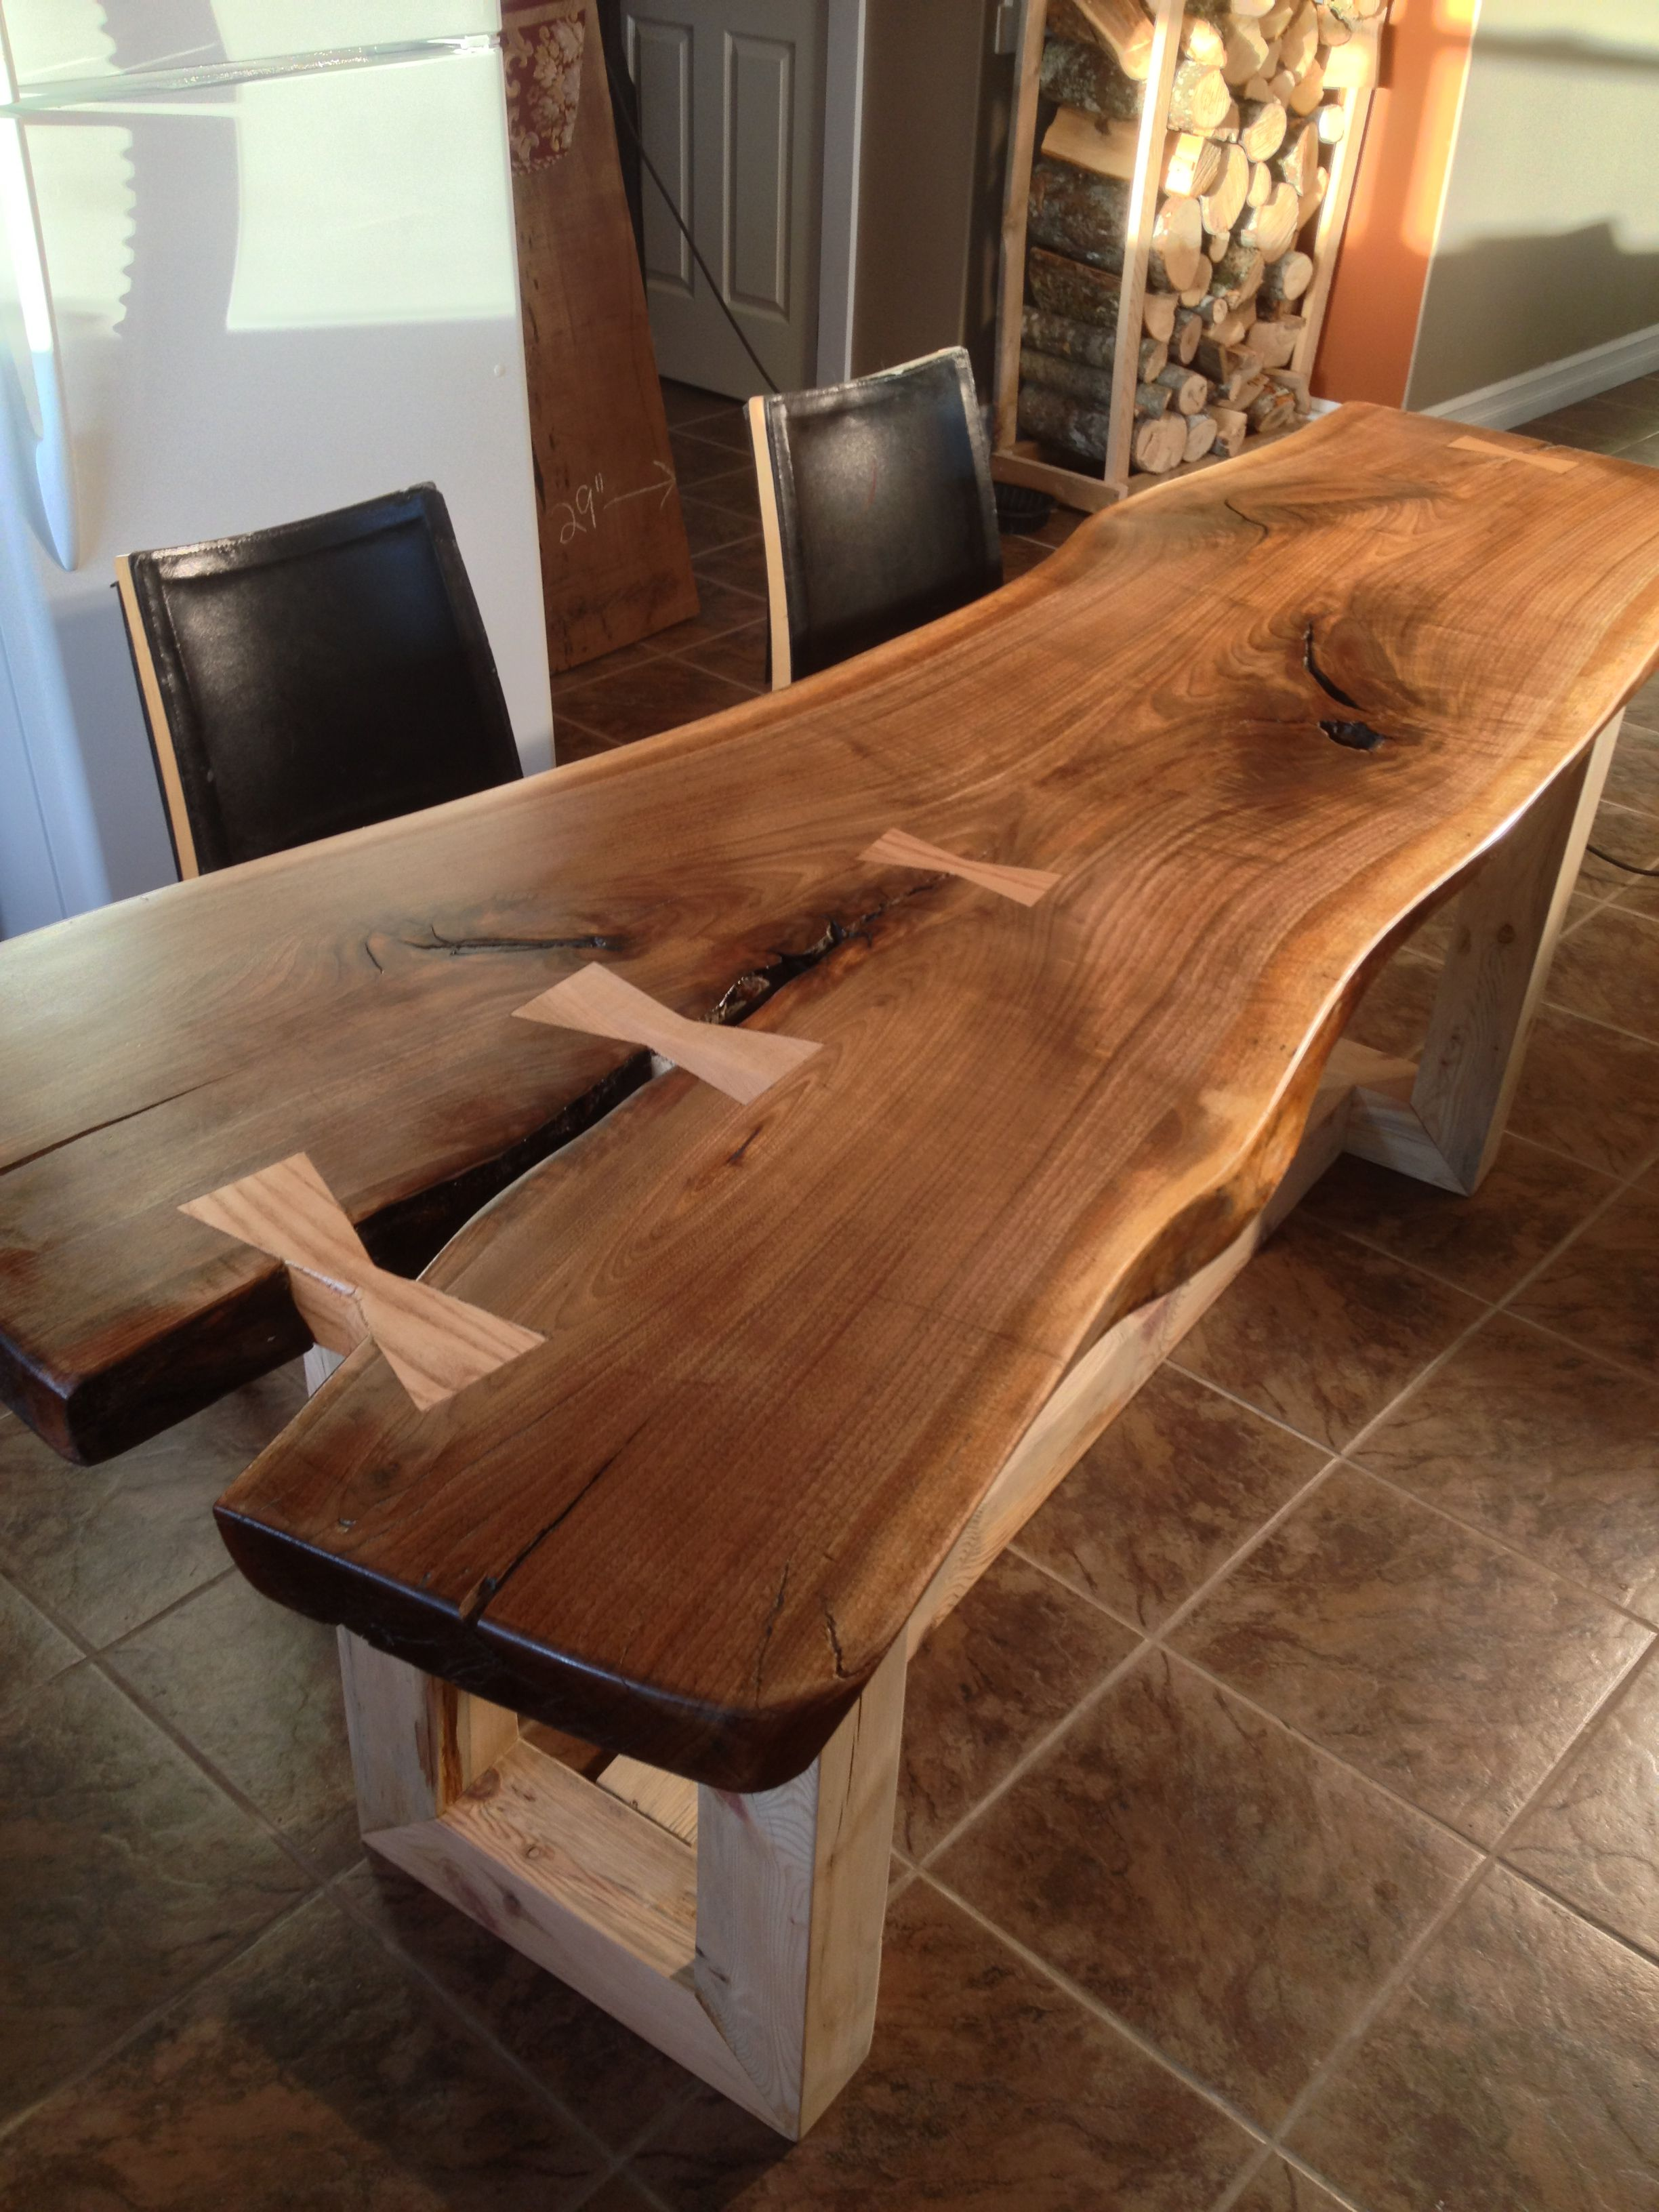 live edge dining table google search woodworking pinterest google search google and tables. Black Bedroom Furniture Sets. Home Design Ideas